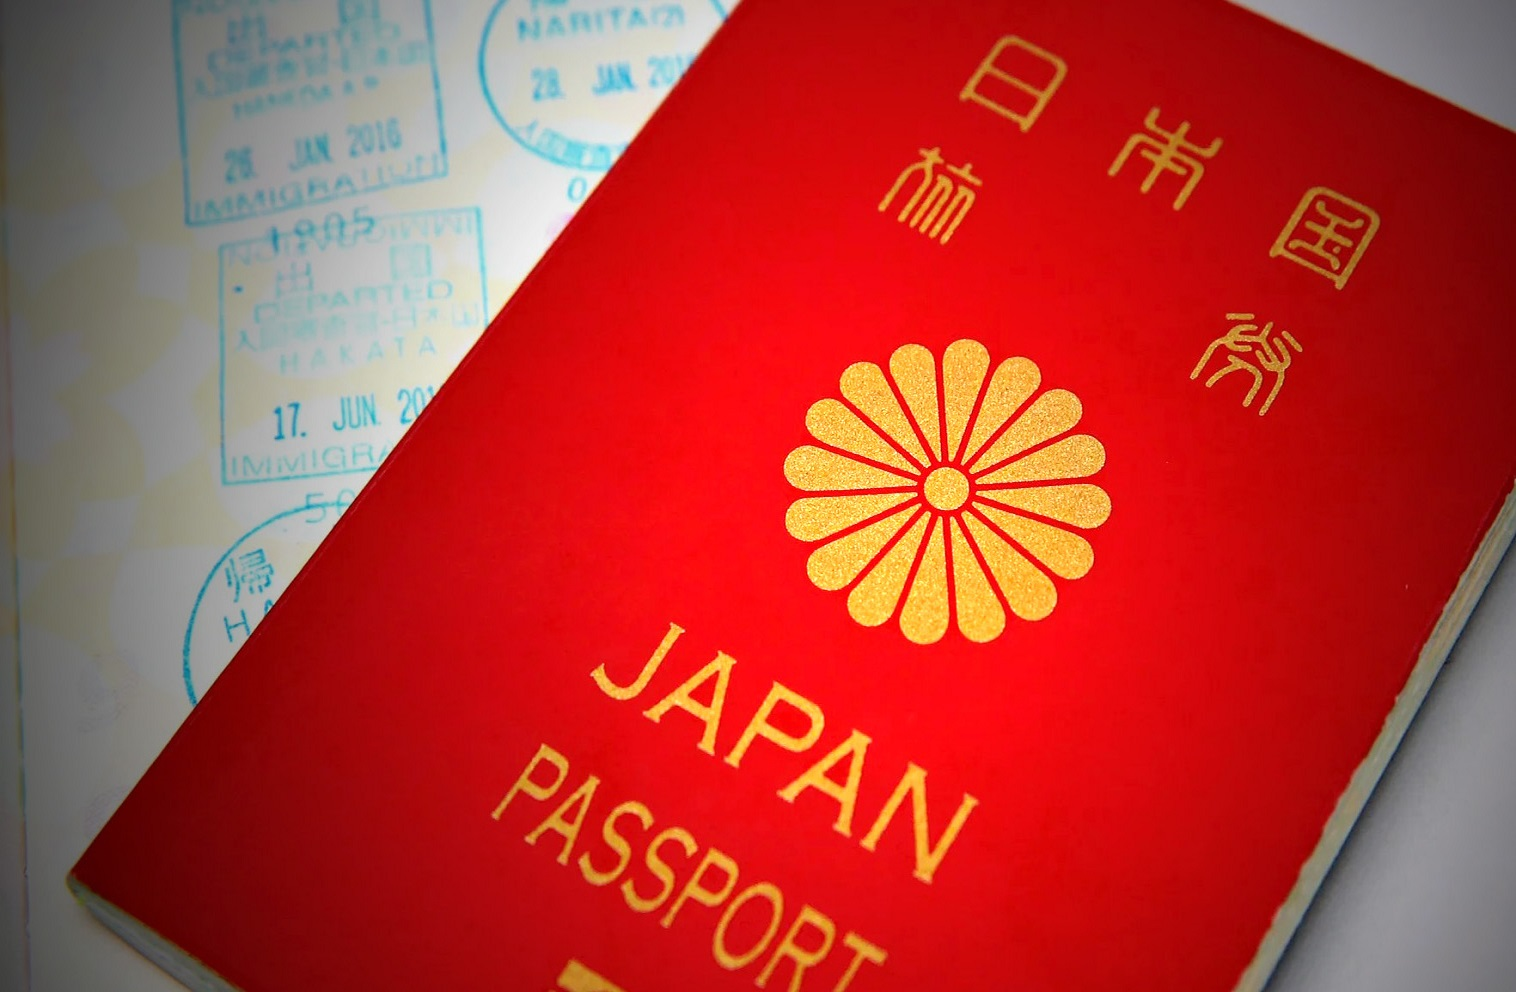 Japan continues to hold the number one position, with passport holders able to access 191 destinations visa-free.